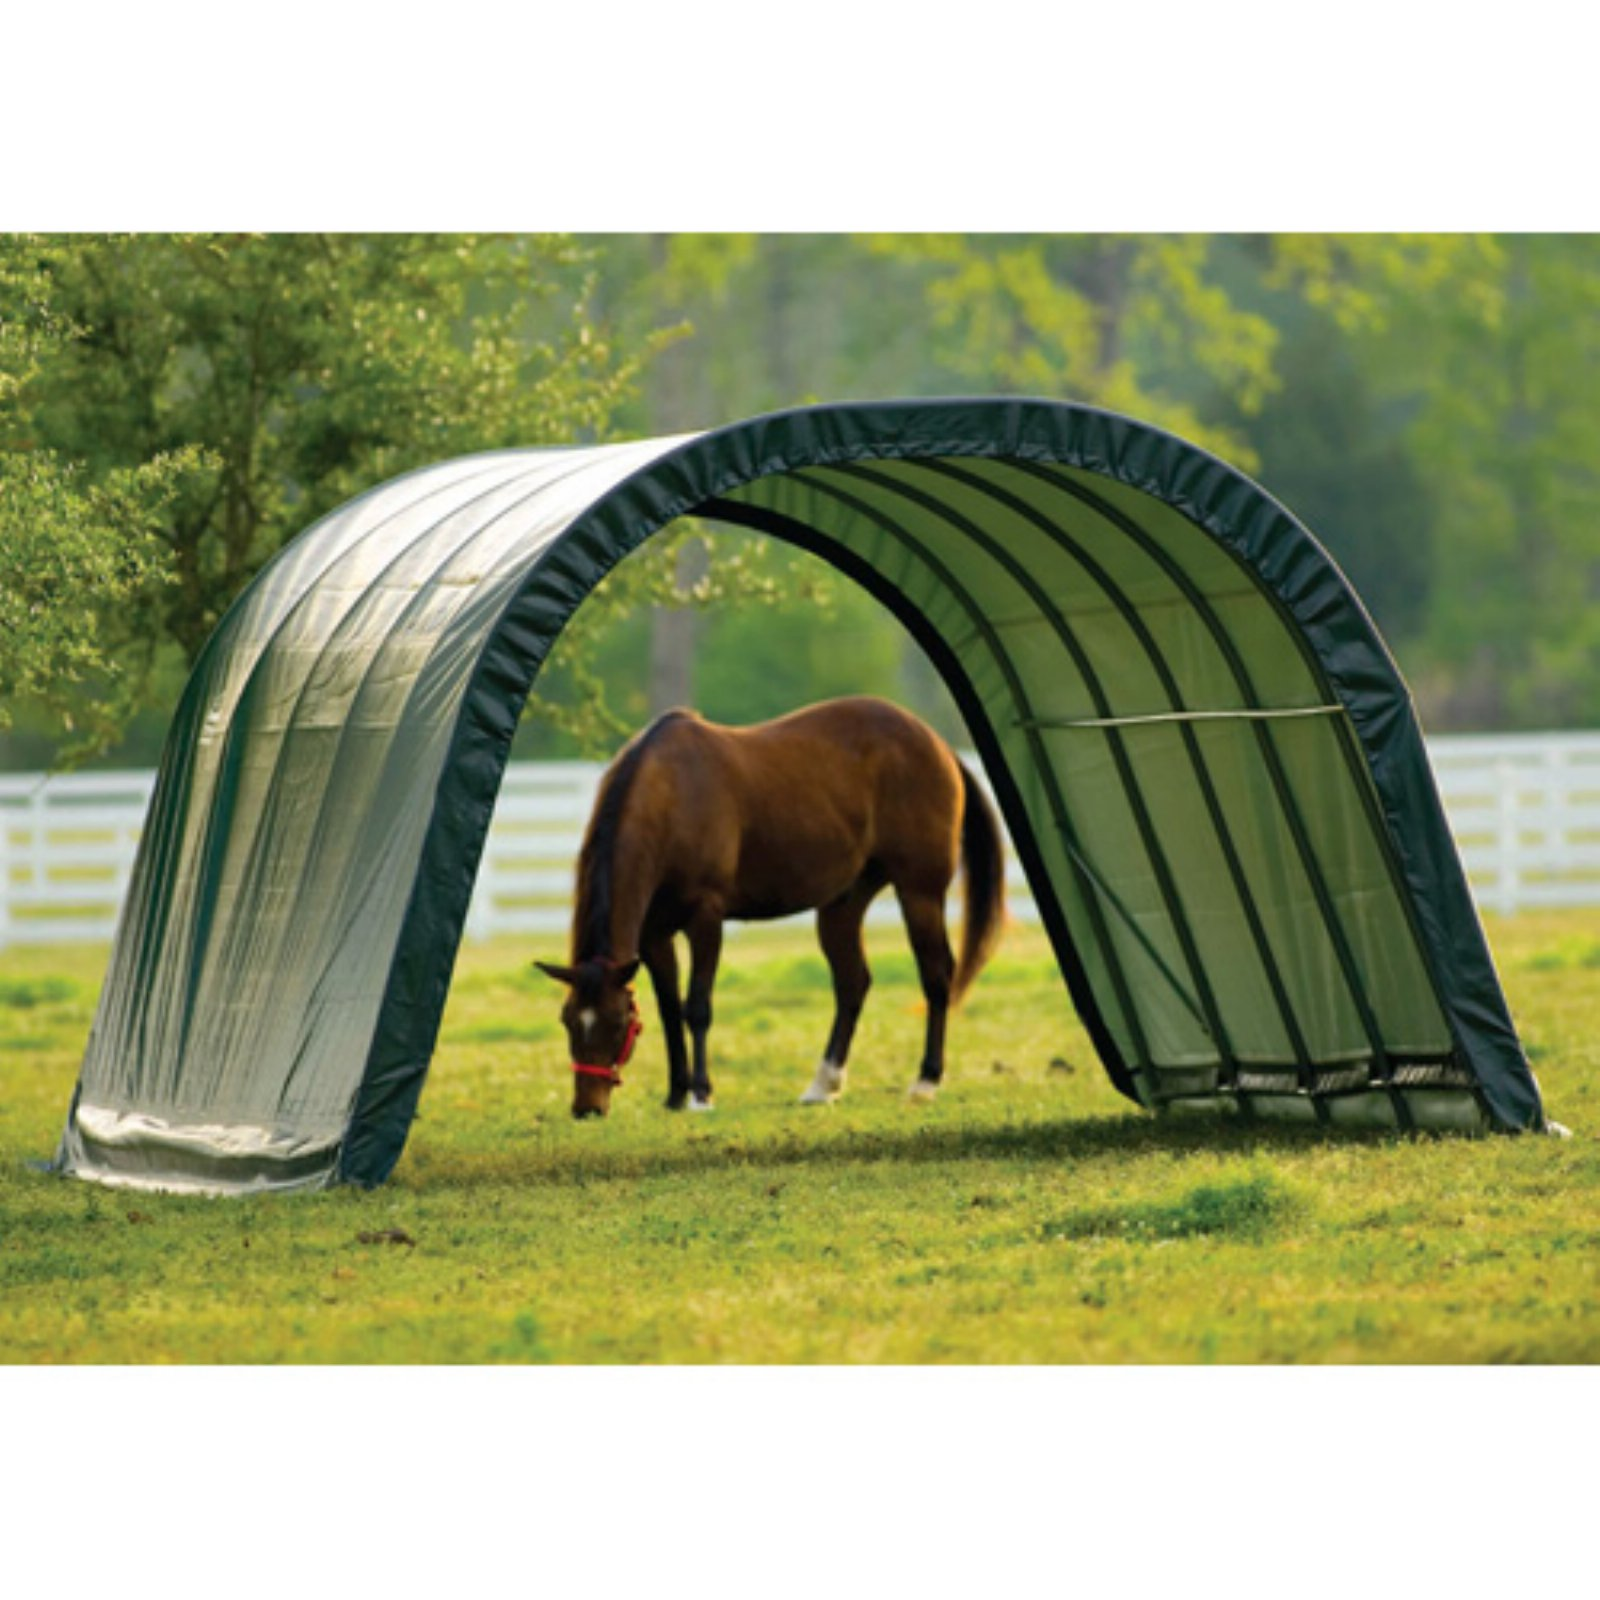 Equine Run-In Shed Round-Style, 12' x 20' x 8'